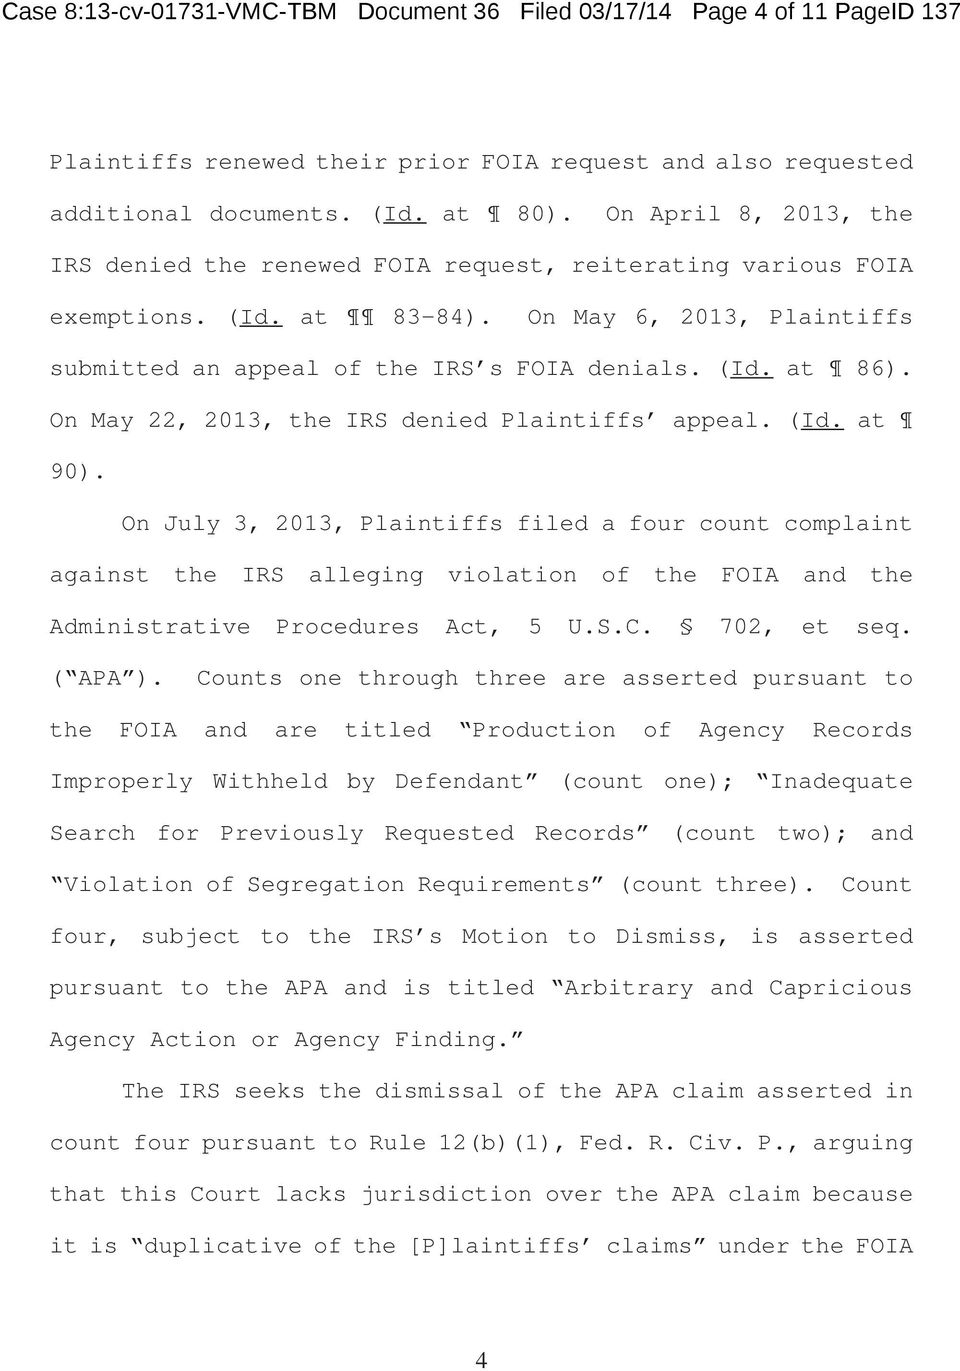 On May 22, 2013, the IRS denied Plaintiffs appeal. (Id. at 90).